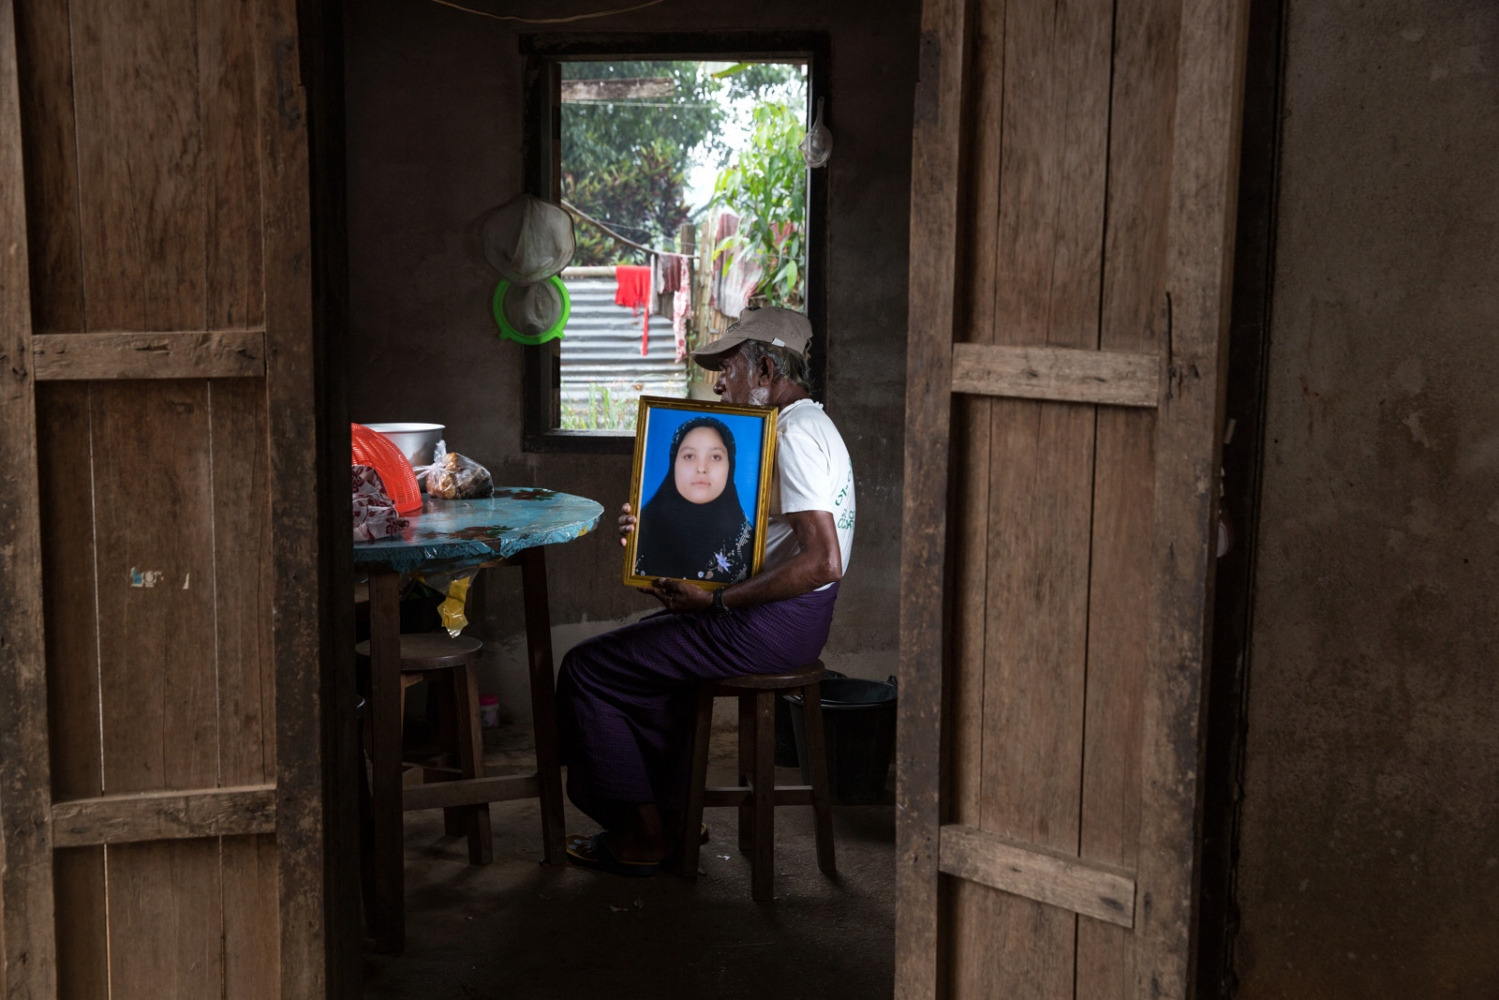 A local cosmetic shop owner awaits the return of his arbitrarily detained daughter Aye Aye San. He didn't want to show his face for fear of retribution. Myanmar military intelligence arrested Aye Aye San, 22, on her wedding day in Kunhein, Shan State on August 9, 2014.  On January 12, 2015, the Taunggyi District Court sentenced her along with her new husband Myo Min Htun, and their family and friends in trials that failed to meet fair trial standards to 14 years' imprisonment with hard labor under sections 5(J) and 5(L) of the 1950 Emergency Provisions Act.  In October 2016, the Myanmar government repealed the notoriously controversial 1950 Emergency Provisions Act, yet Aye Aye San and others remain detained under the now defunct Act.